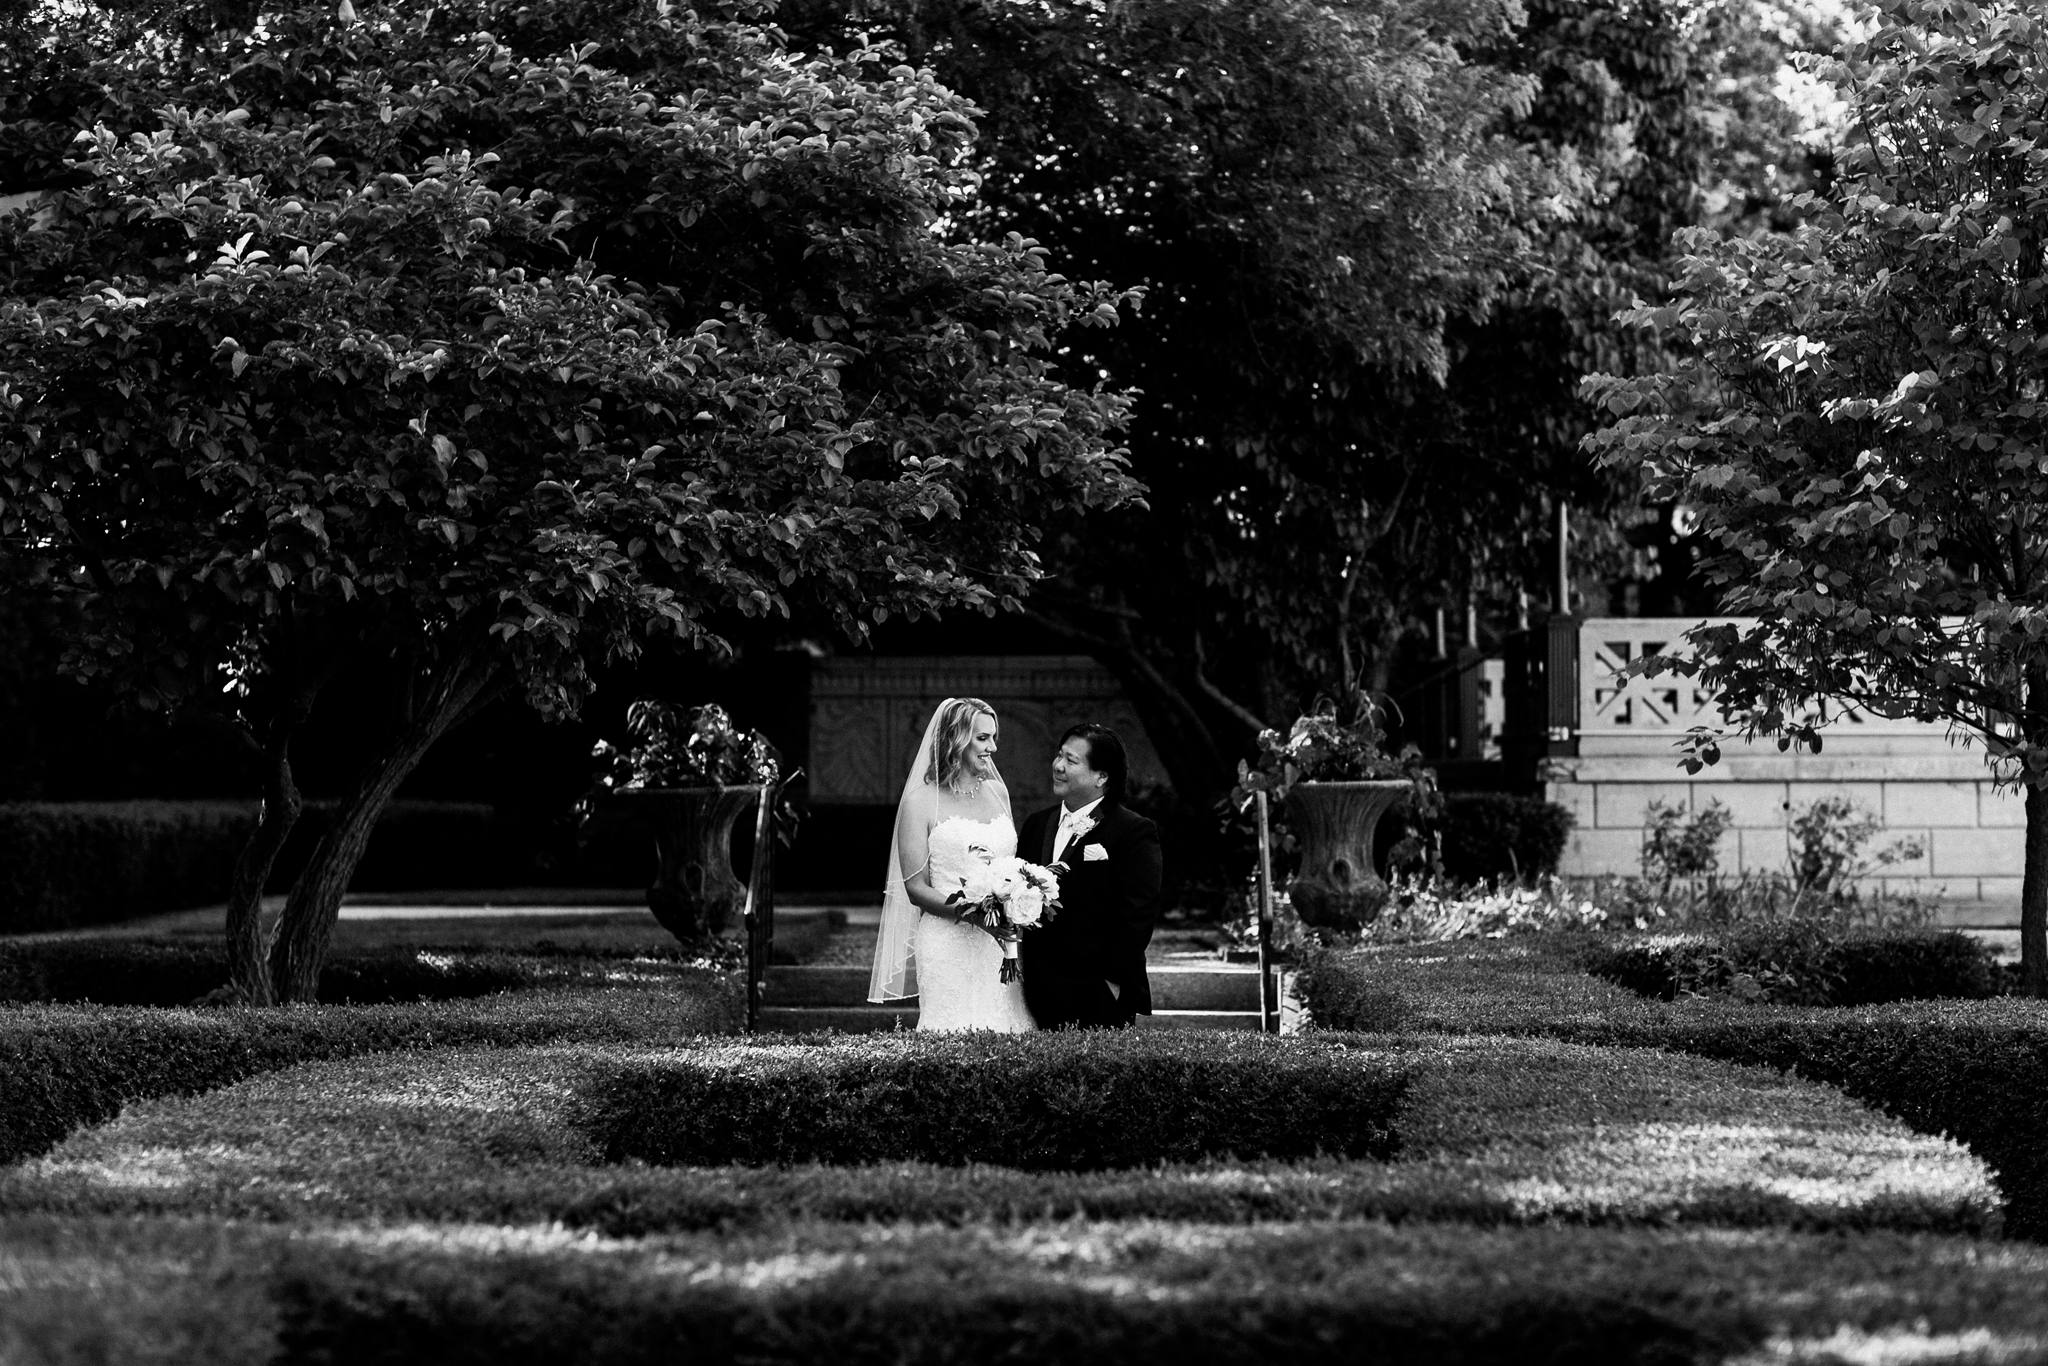 hotel_baker_st_charles_IL_wedding_photographer_0022.jpg